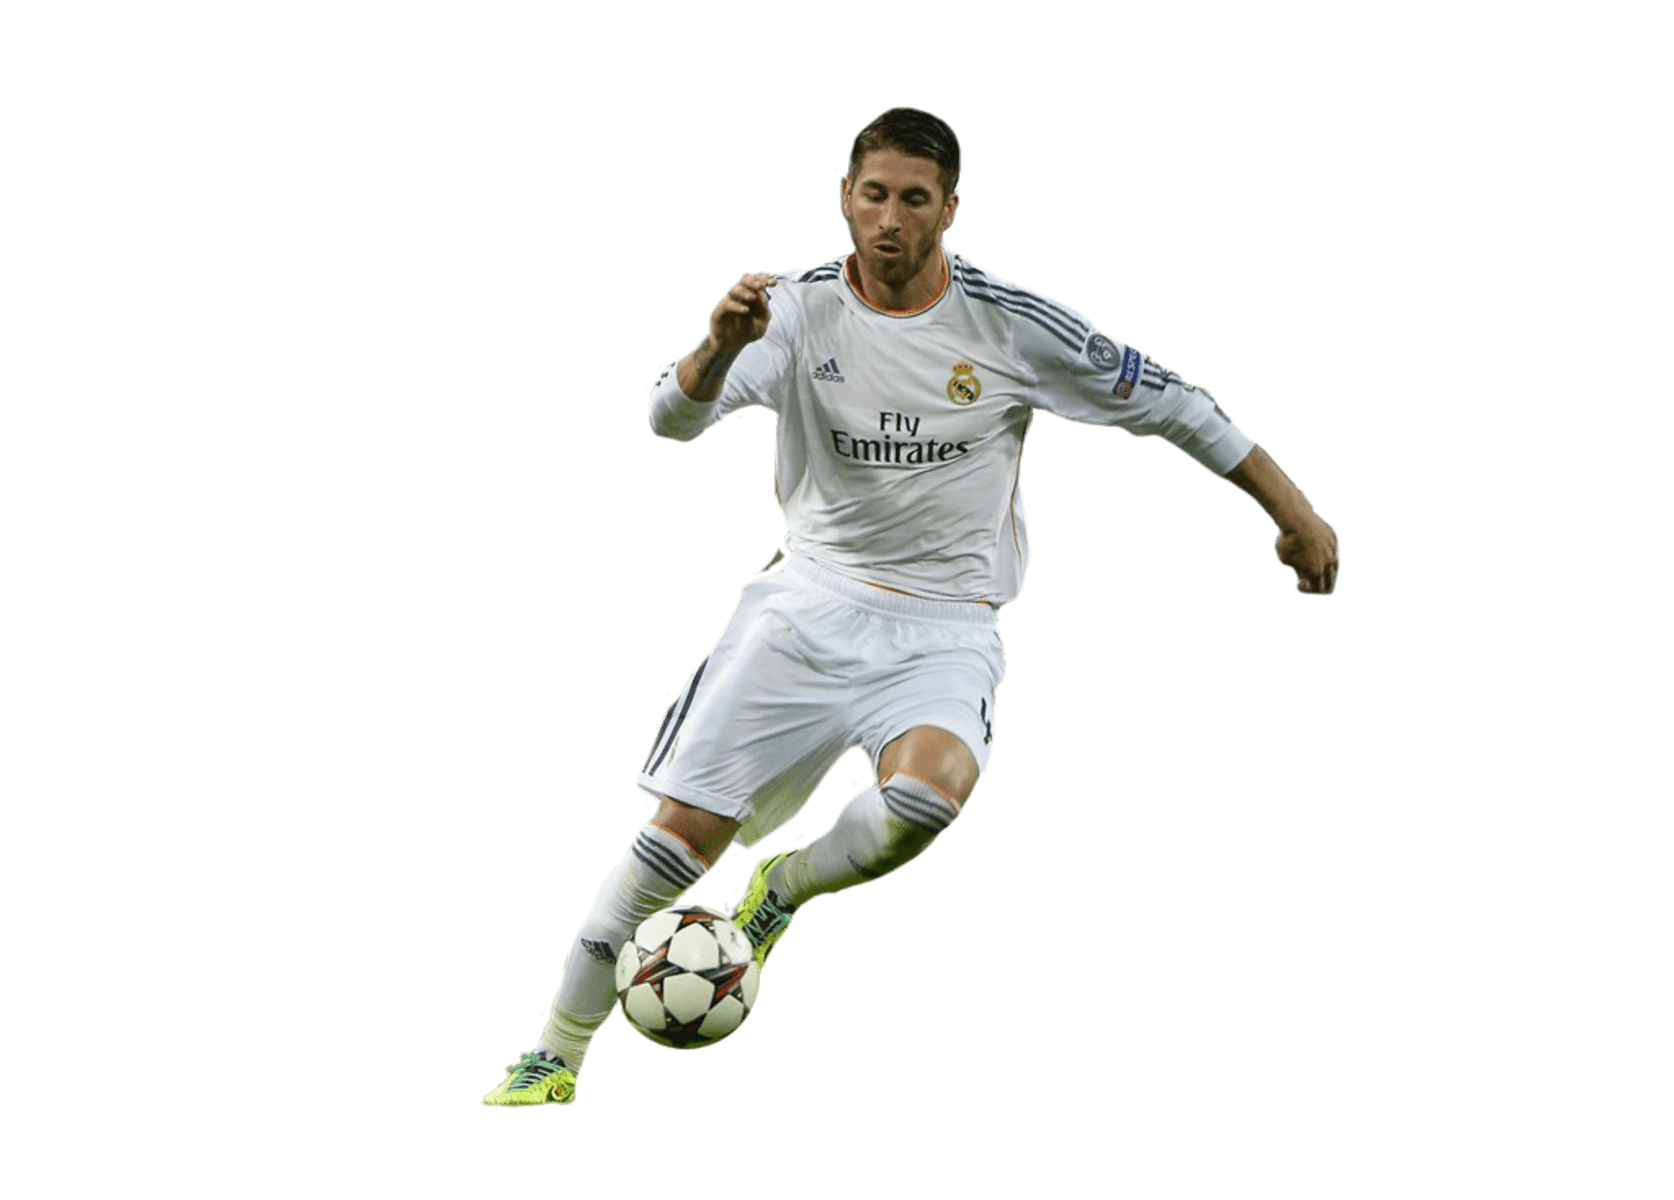 sergio ramos hd images - photo #30